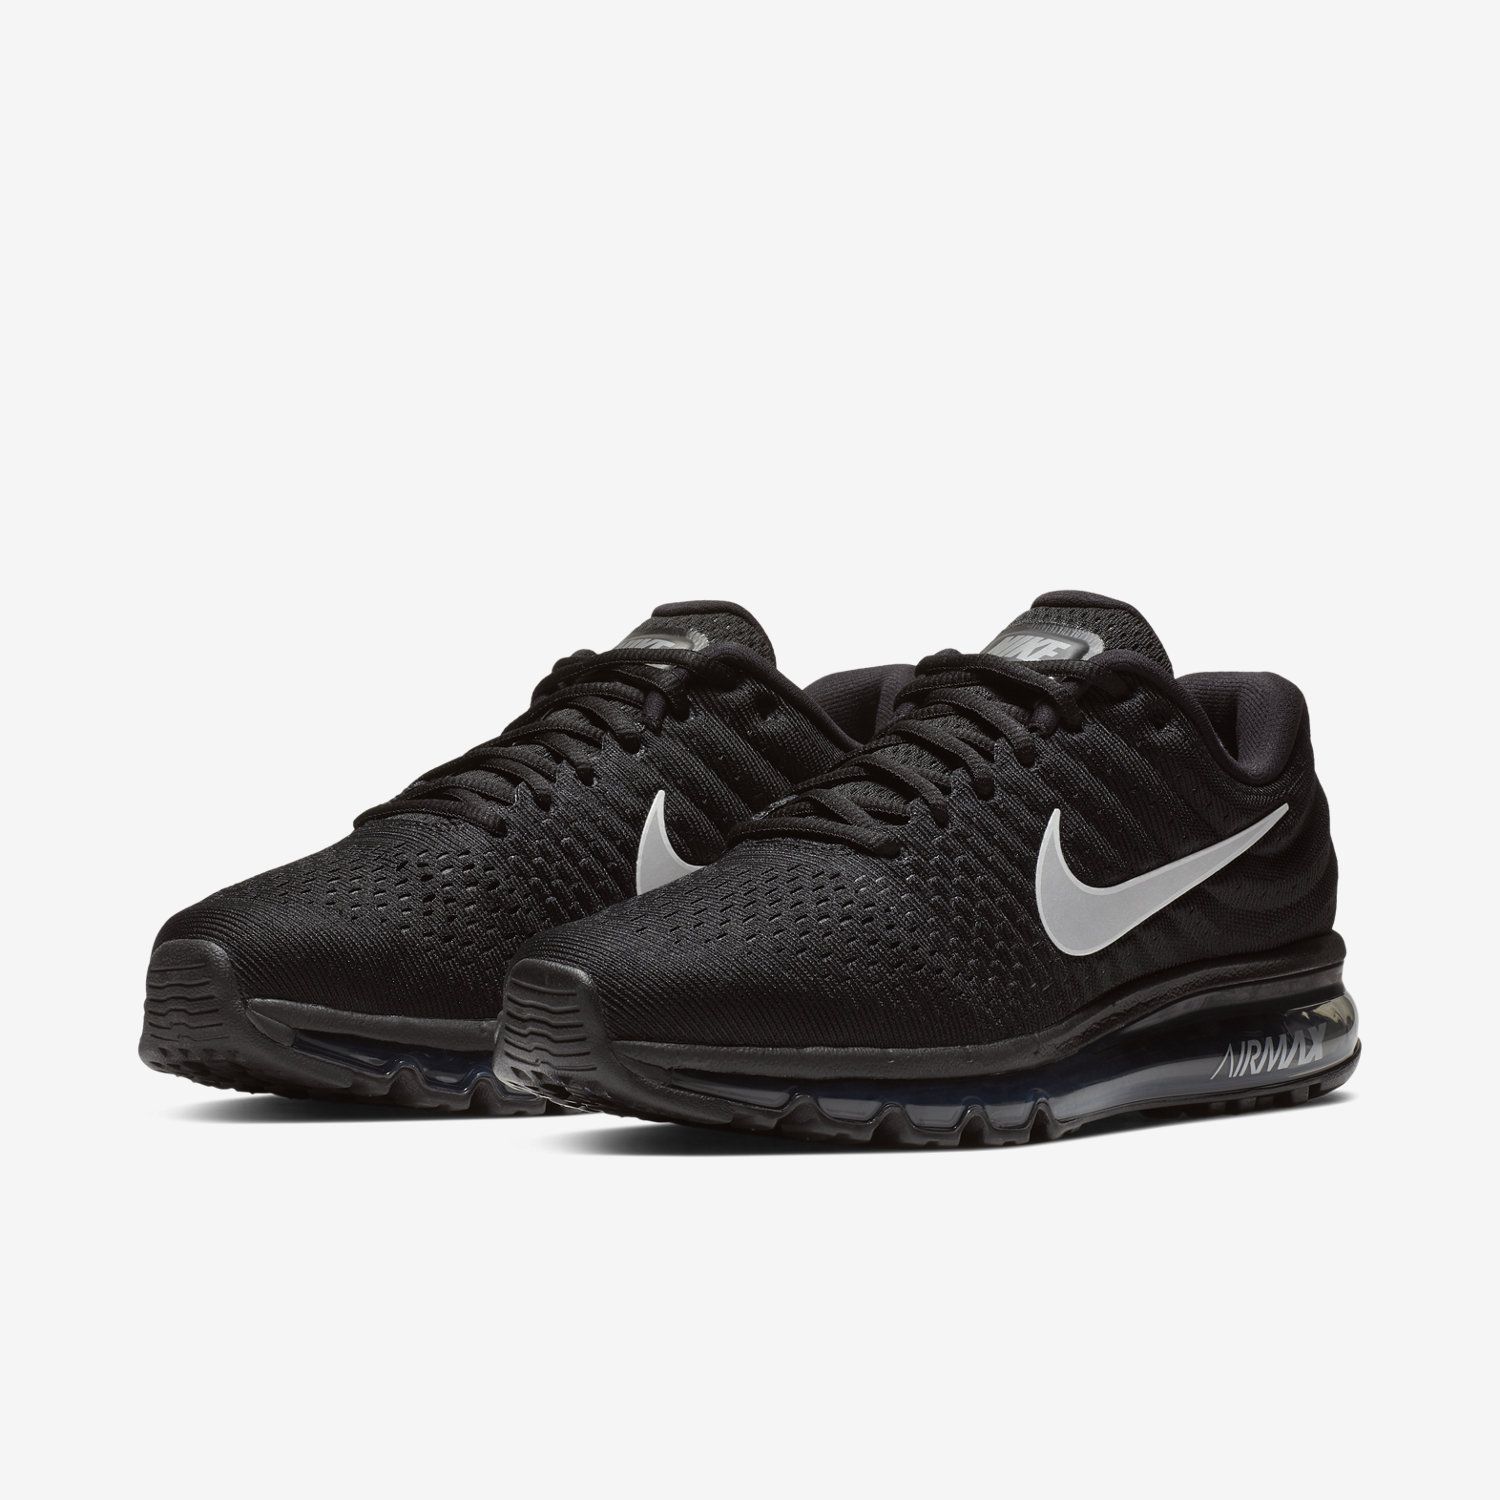 nike air max 2017 mens navy blue